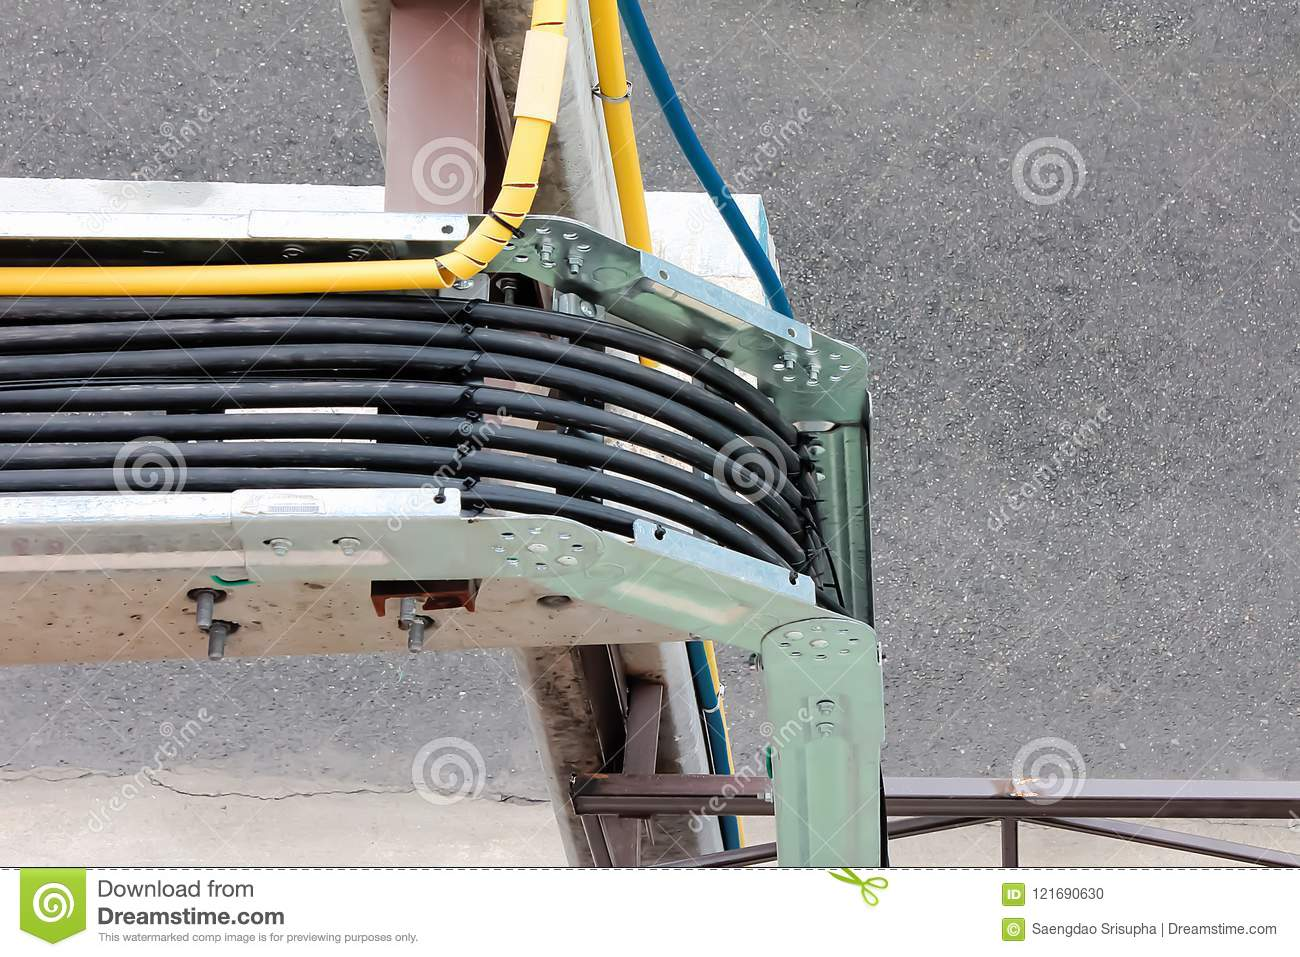 Stupendous Electric Wiring With Rails Is A Popular Method In Large Buildings Wiring 101 Akebretraxxcnl